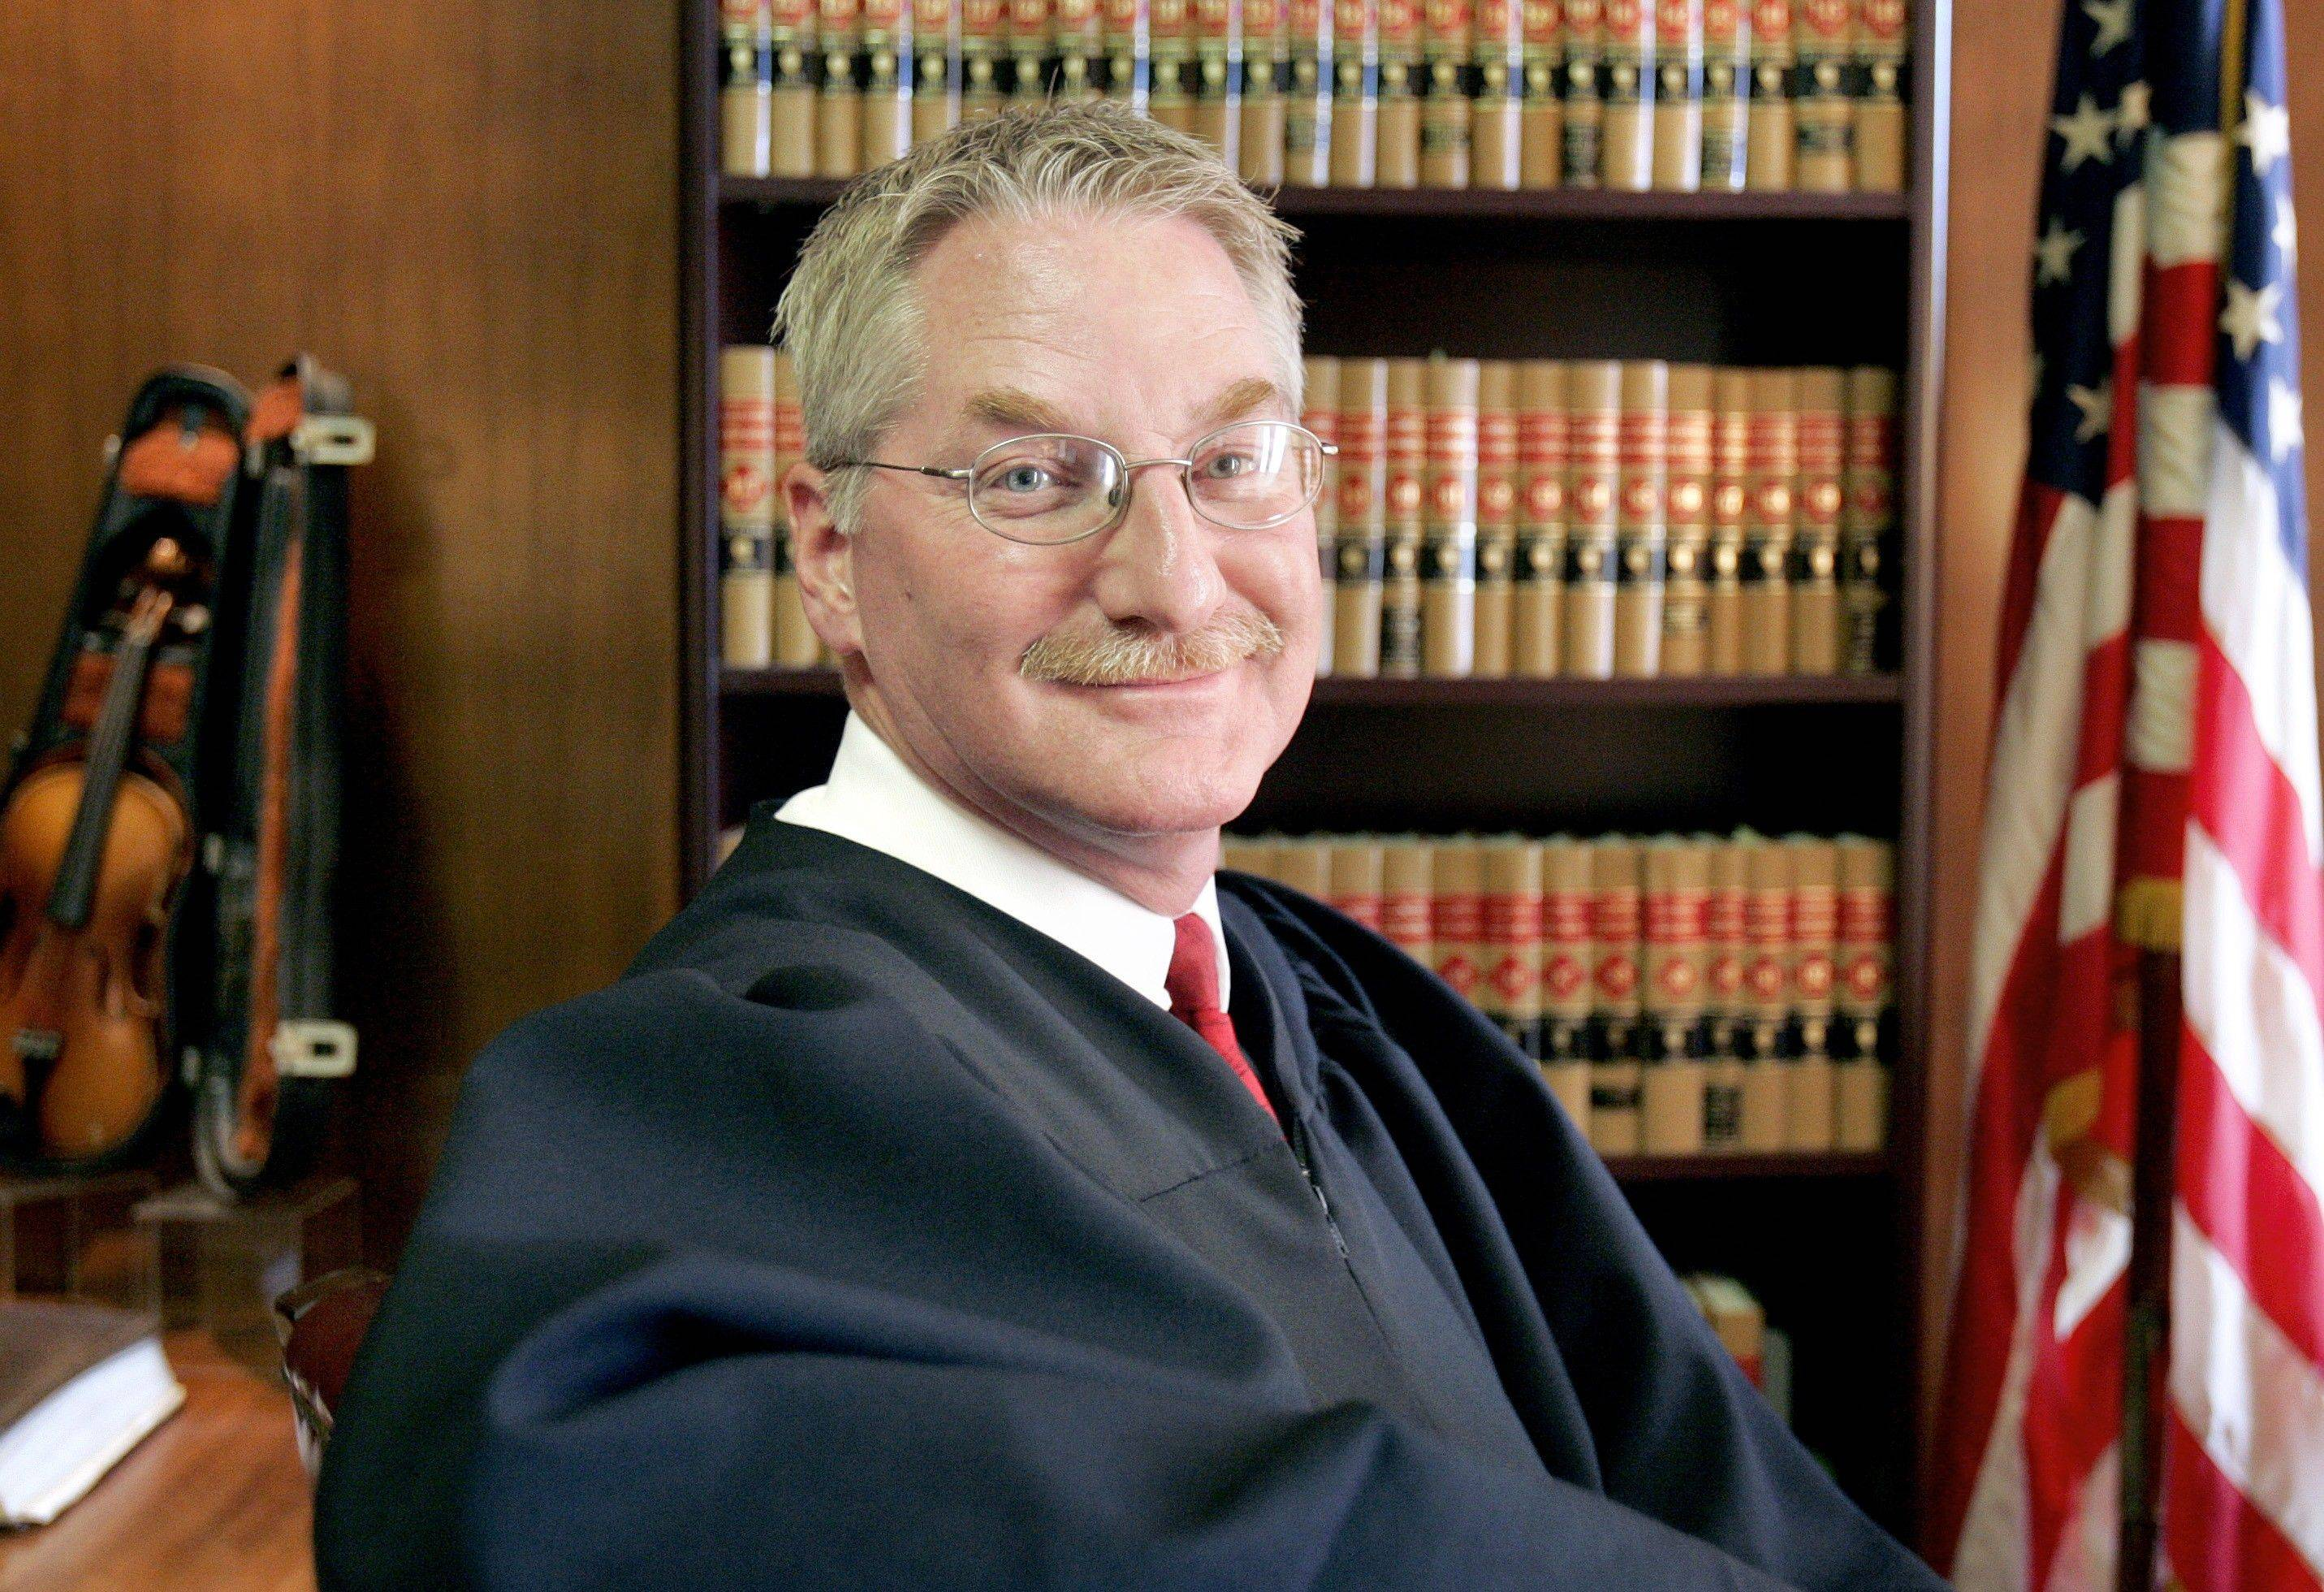 Former Lake County chief judge David Hall will face a new trial on DUI charges, but his blood tested after his arrest will not be allowed as evidence.